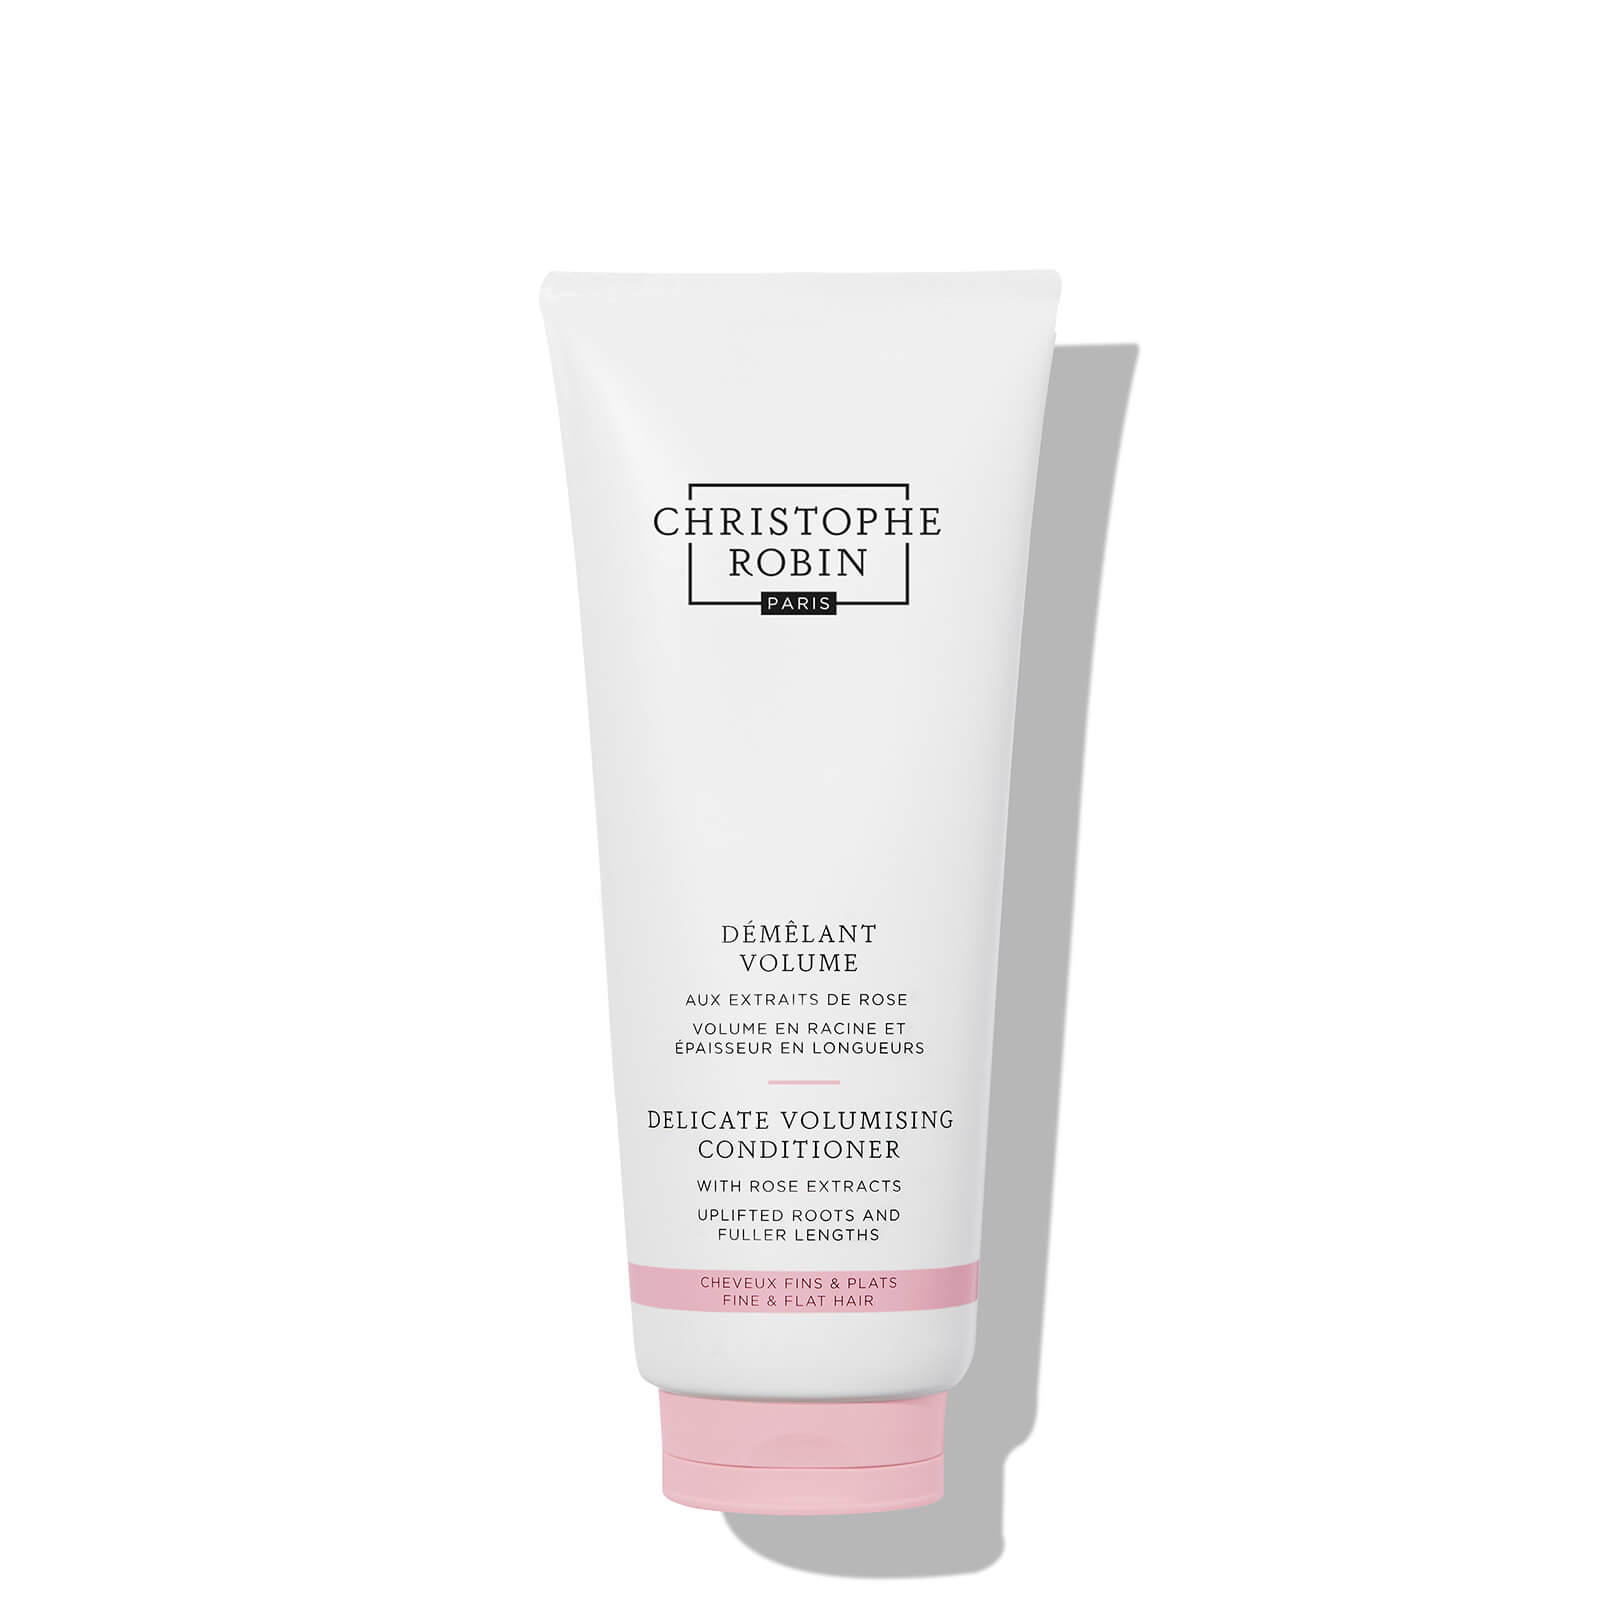 Christophe Robin Volumising Conditioner with Rose Extracts 200ml  - Купить